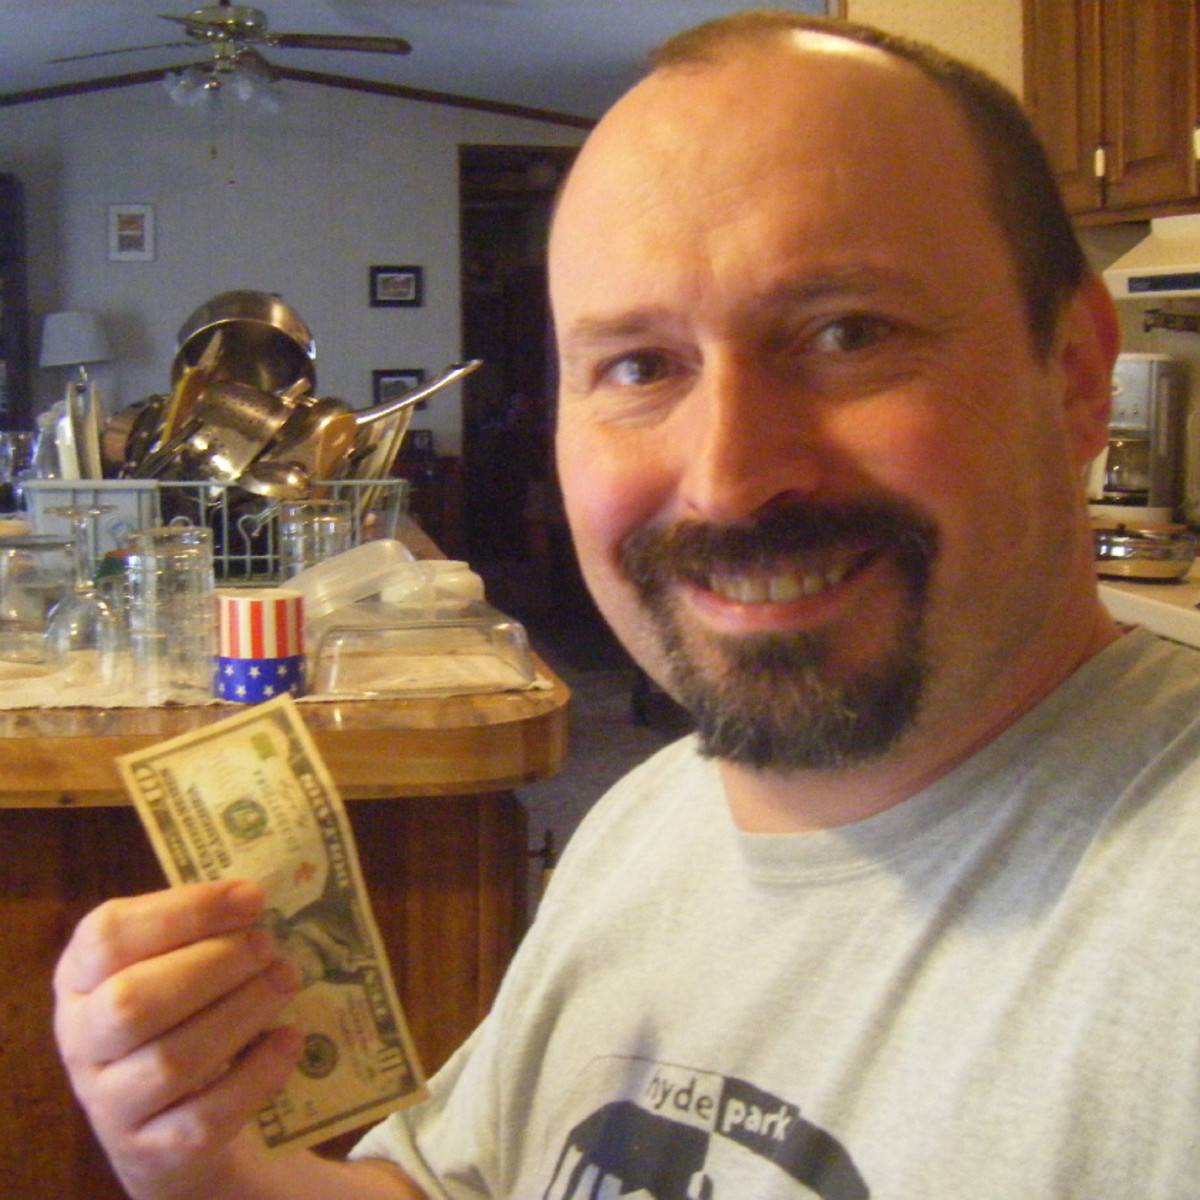 The author with a dollar bill.  It is easy to earn with Mechanical Turk, but it is difficult to earn a living wage.  Over time, the payment levels have gradually shrunk.